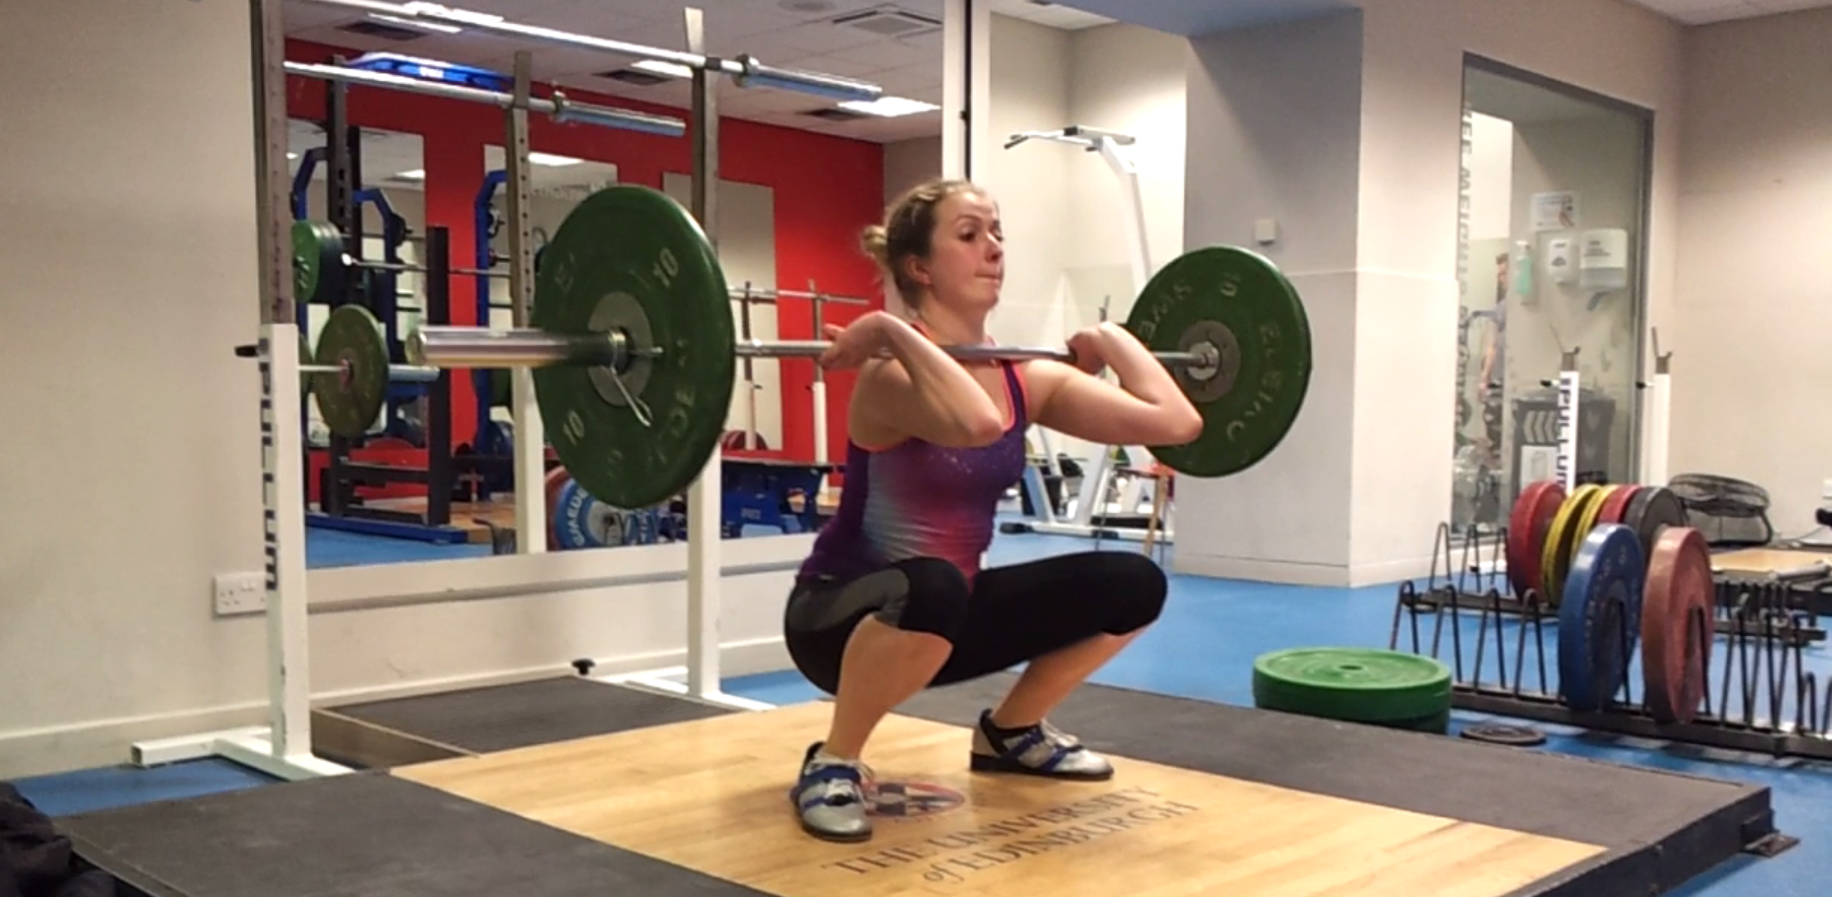 The Russian Squat Routine Cast Iron Strength